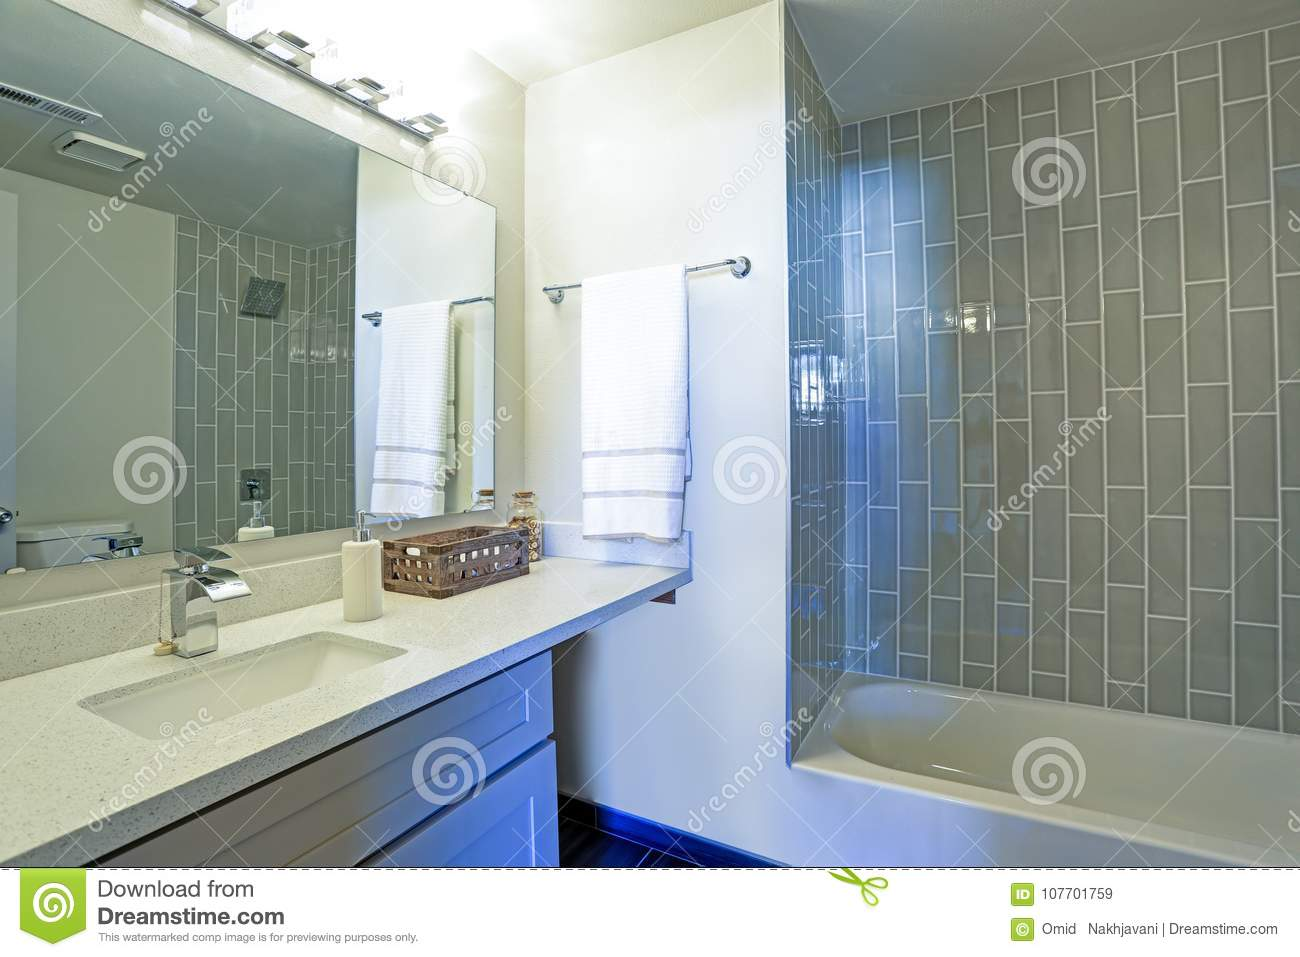 Outstanding Bathroom Shower Surround Pictures - Bathroom - knawi.com